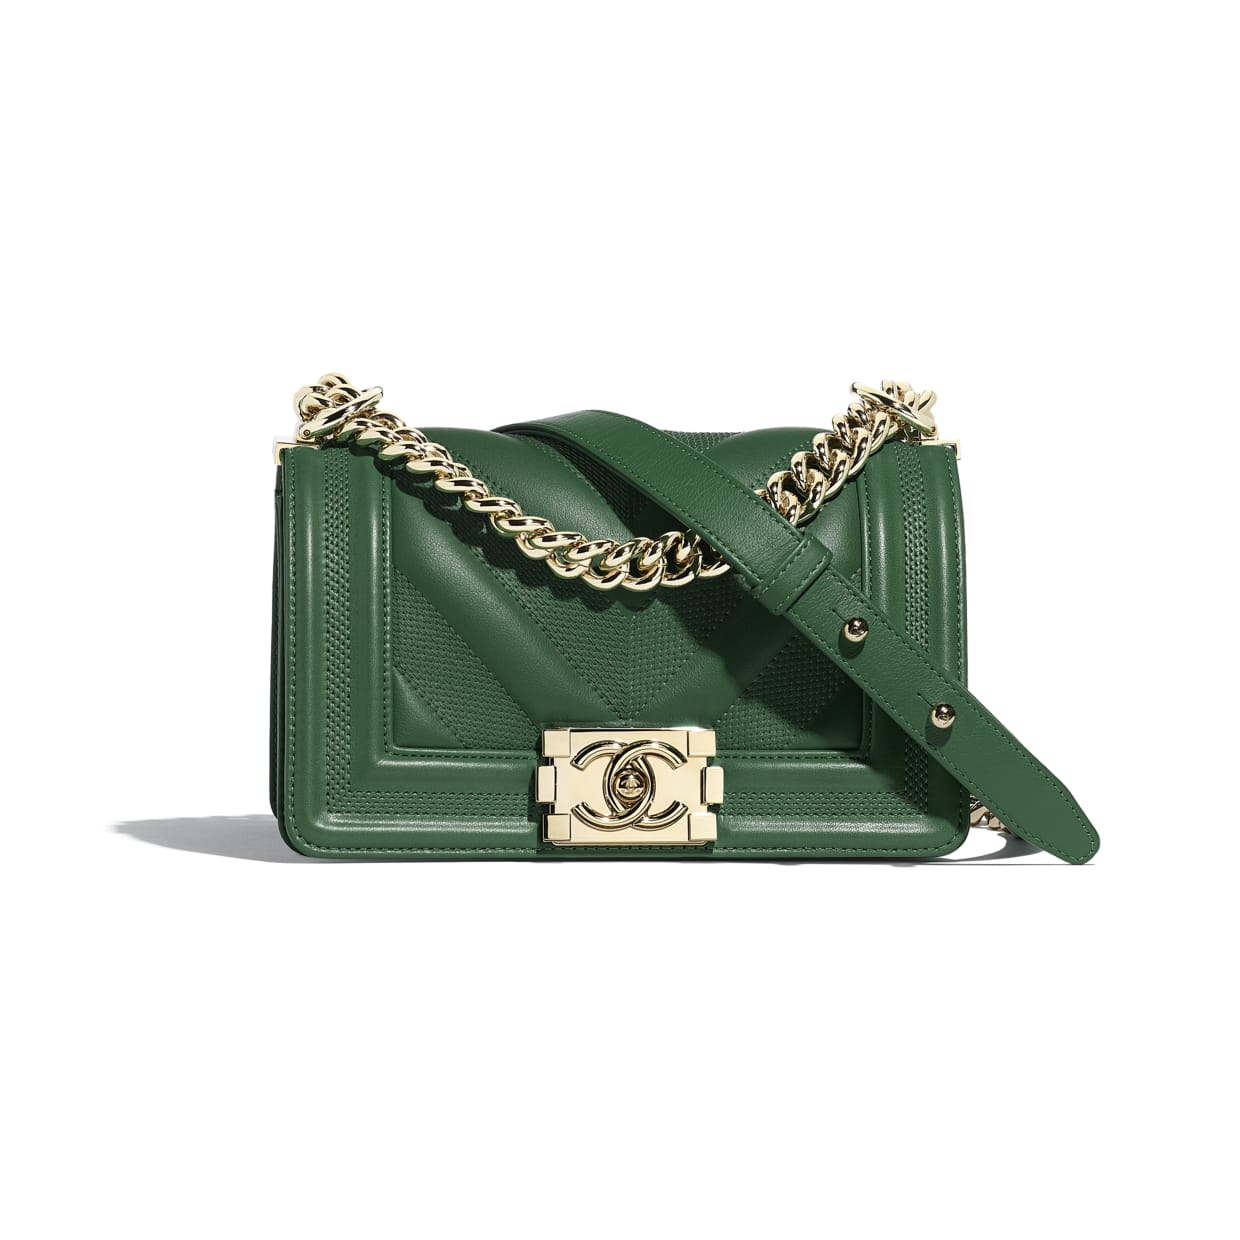 Chanel Bag Price List Reference Guide Spotted Fashion